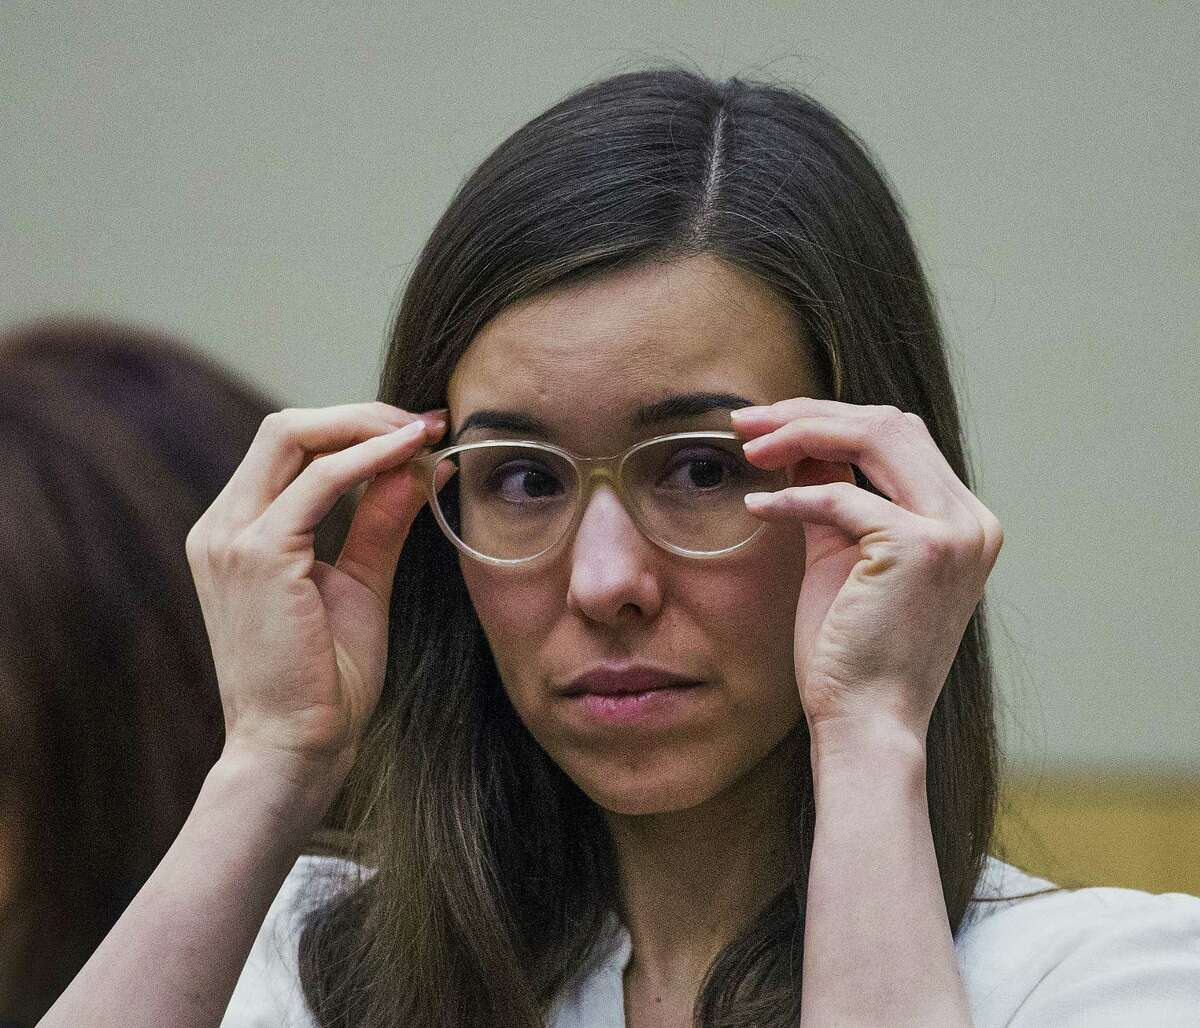 Jodi Arias adjusts her glasses during her sentencing retrial at Maricopa County Superior Court, Wednesday, Feb. 18, 2015, in Phoenix. Arias was convicted of first-degree murder in May 2013 in the 2008 killing of former boyfriend Travis Alexander. However, jurors deadlocked on her punishment. (AP Photo/The Arizona Republic, Tom Tingle, Pool)